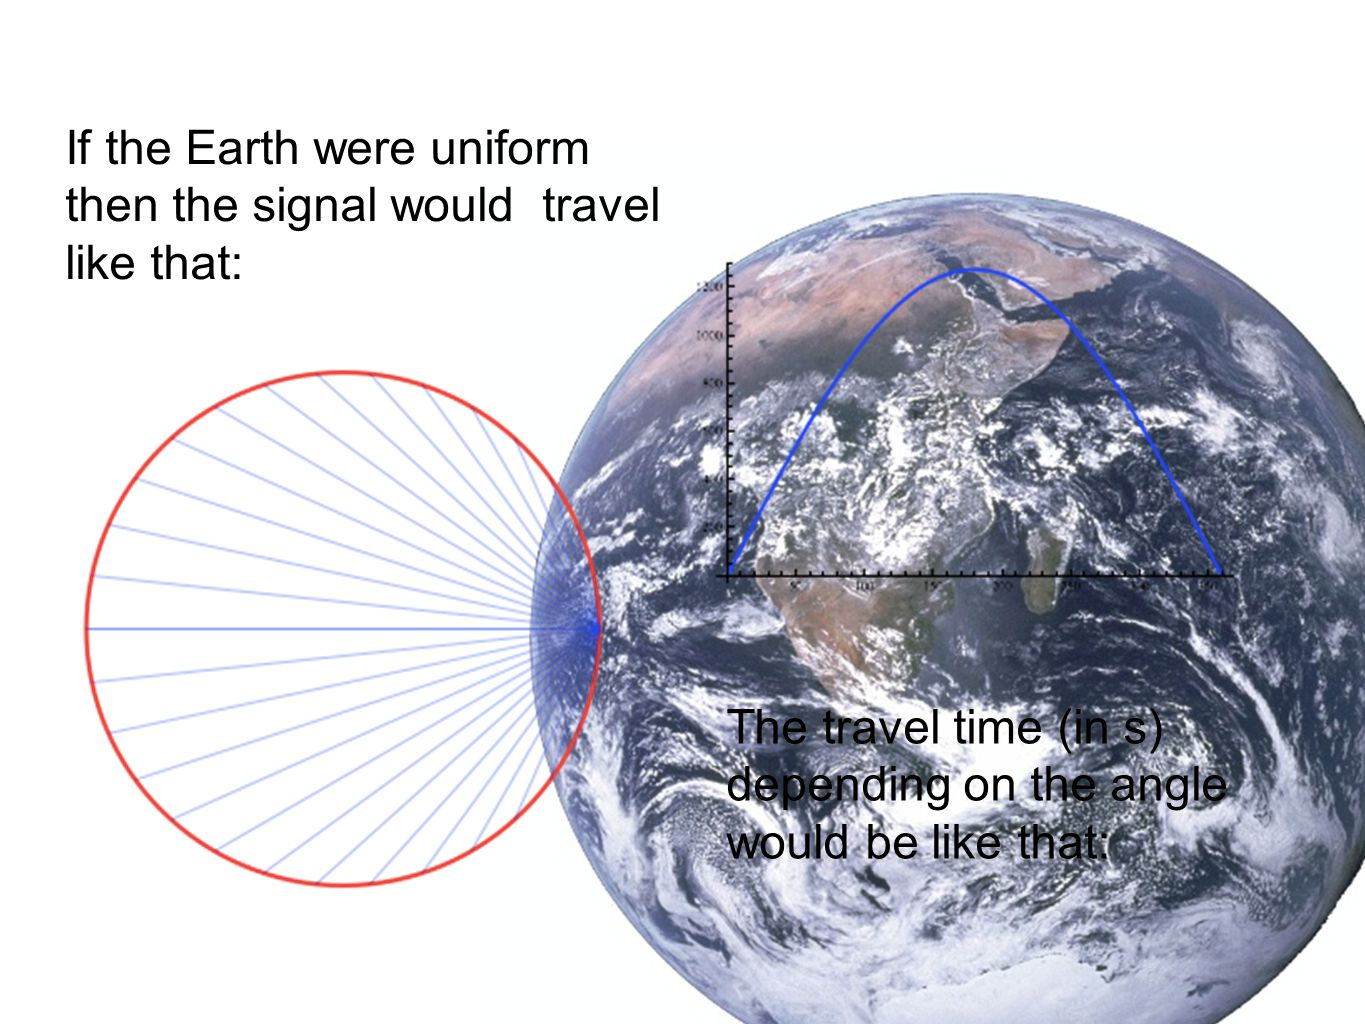 If the Earth were uniform then the signal would travel like that: The travel time (in s) depending on the angle would be like that: